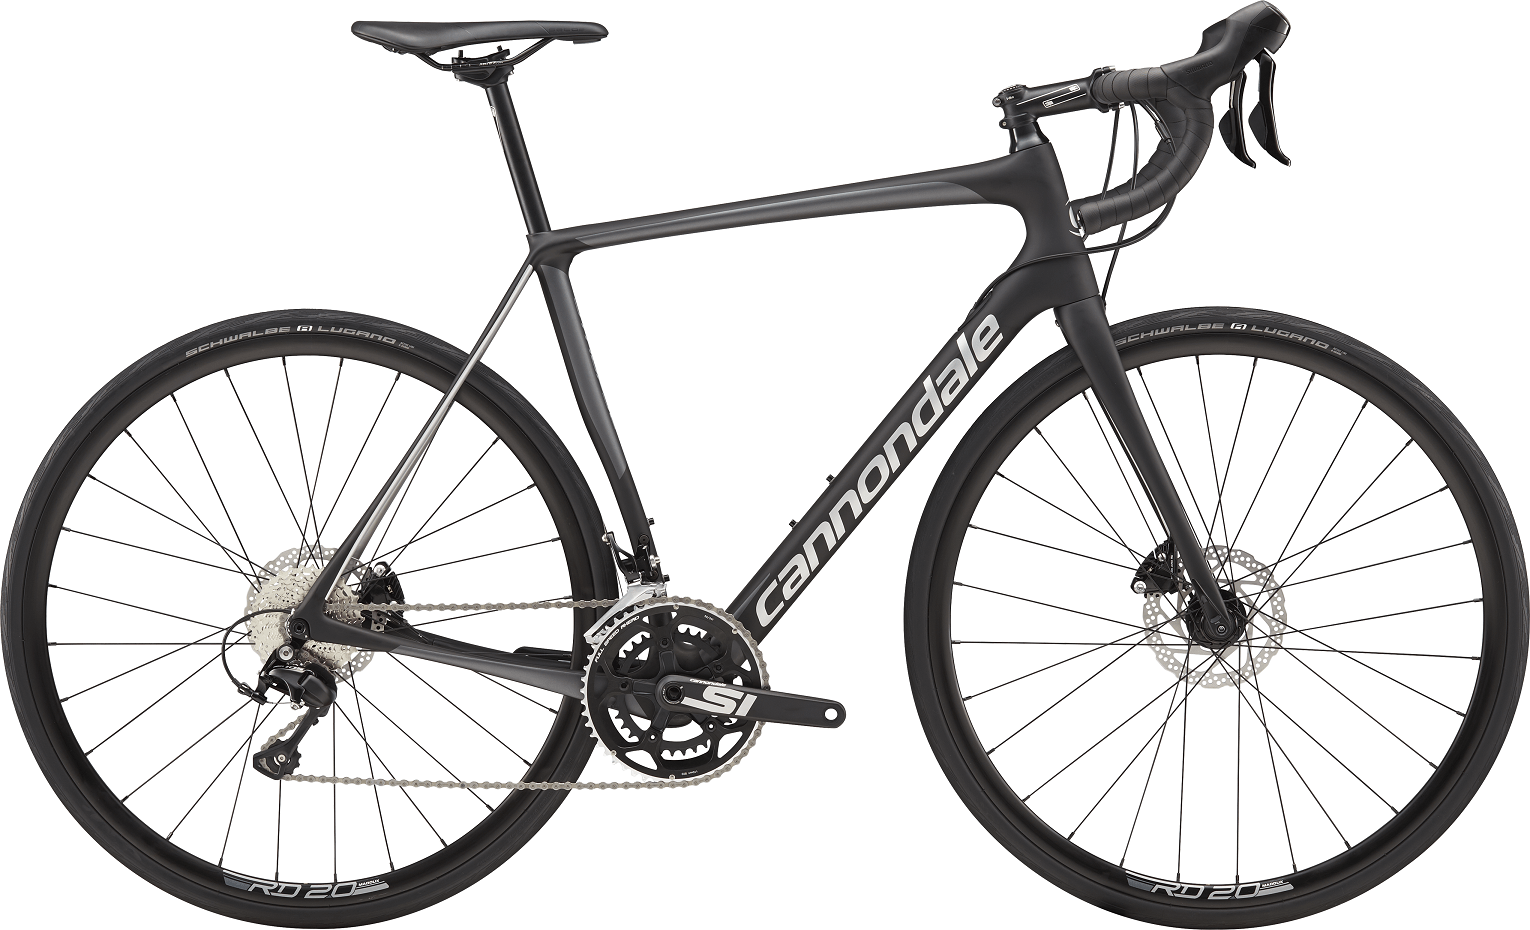 Cannondale Synapse Shimano 105 2x11 Disc